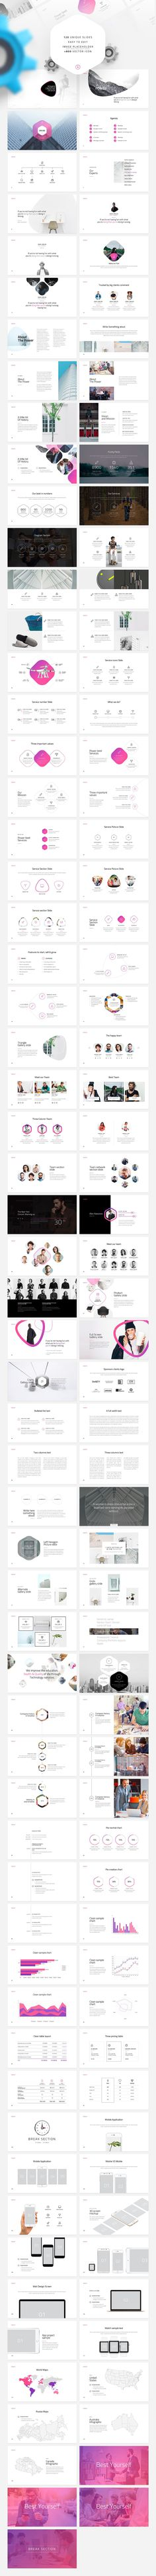 Power is a modern and professional free PowerPoint template from Dublin Design. This free template has a variety of great features including creative photo layouts, overlays, diagrams, maps, Mockups and much more!Present your company or idea in a creati…